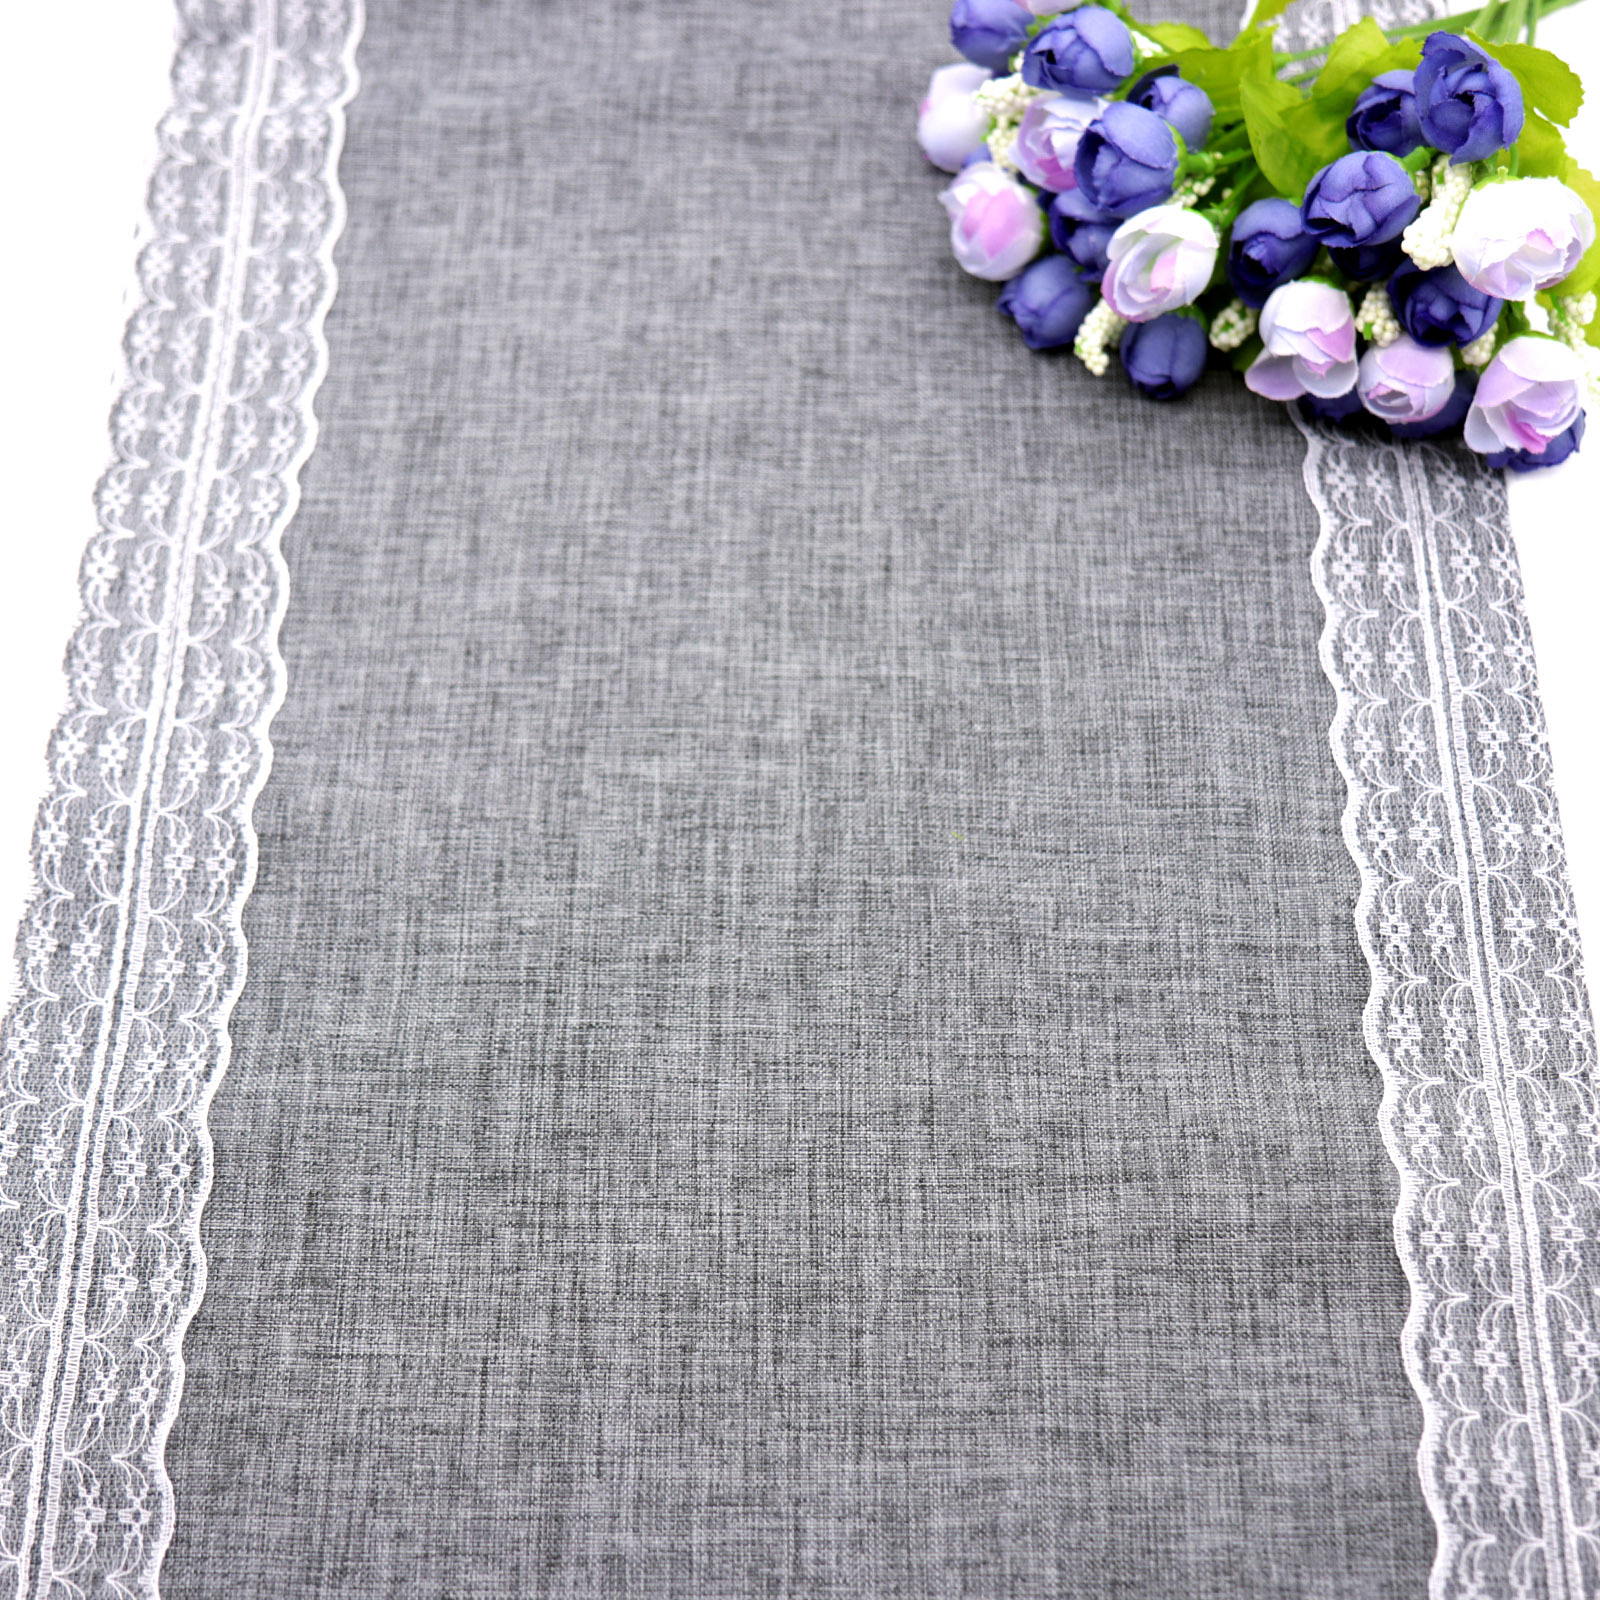 1pcs 30x275cm Gray Lace Table Runner Natural Jute Burlap Imitated Linen Table Cloth Party Rustic Wedding Decor Home Textile